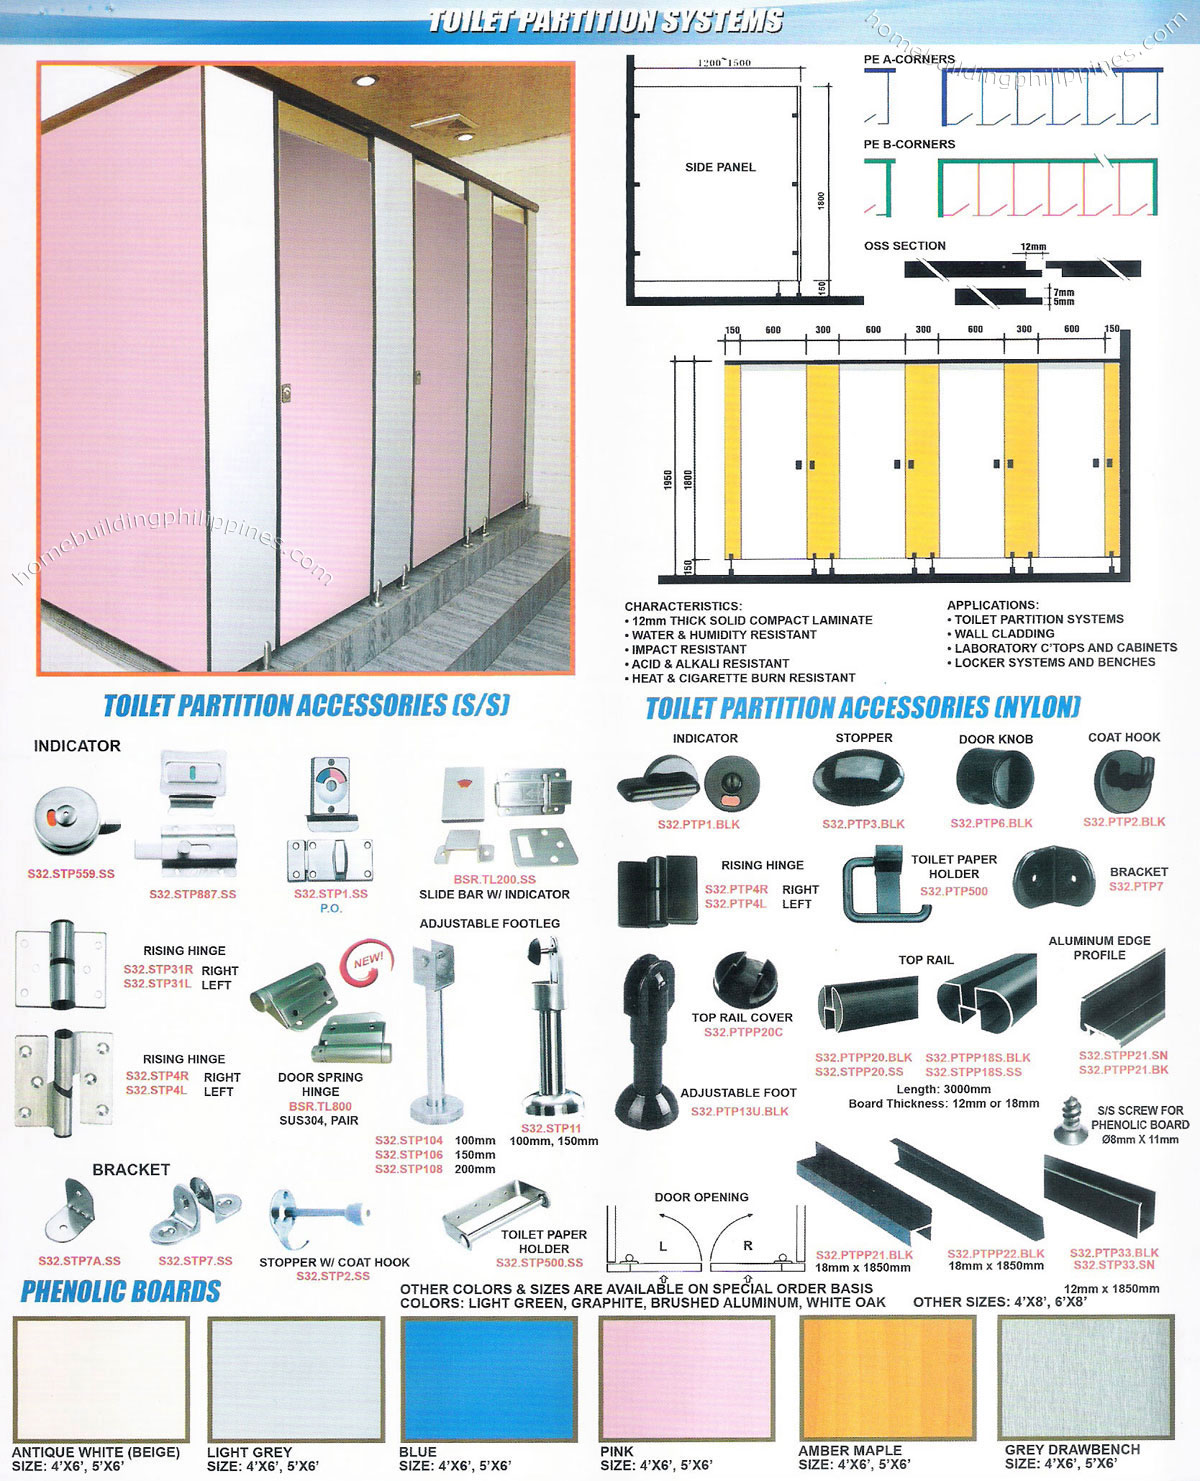 bathroom stall parts. Toilet Partition System Accessories Indicator Slide Bar Rising Spring Hinge Adjustable Footleg Phenolic Board Door Stopper Bathroom Stall Parts